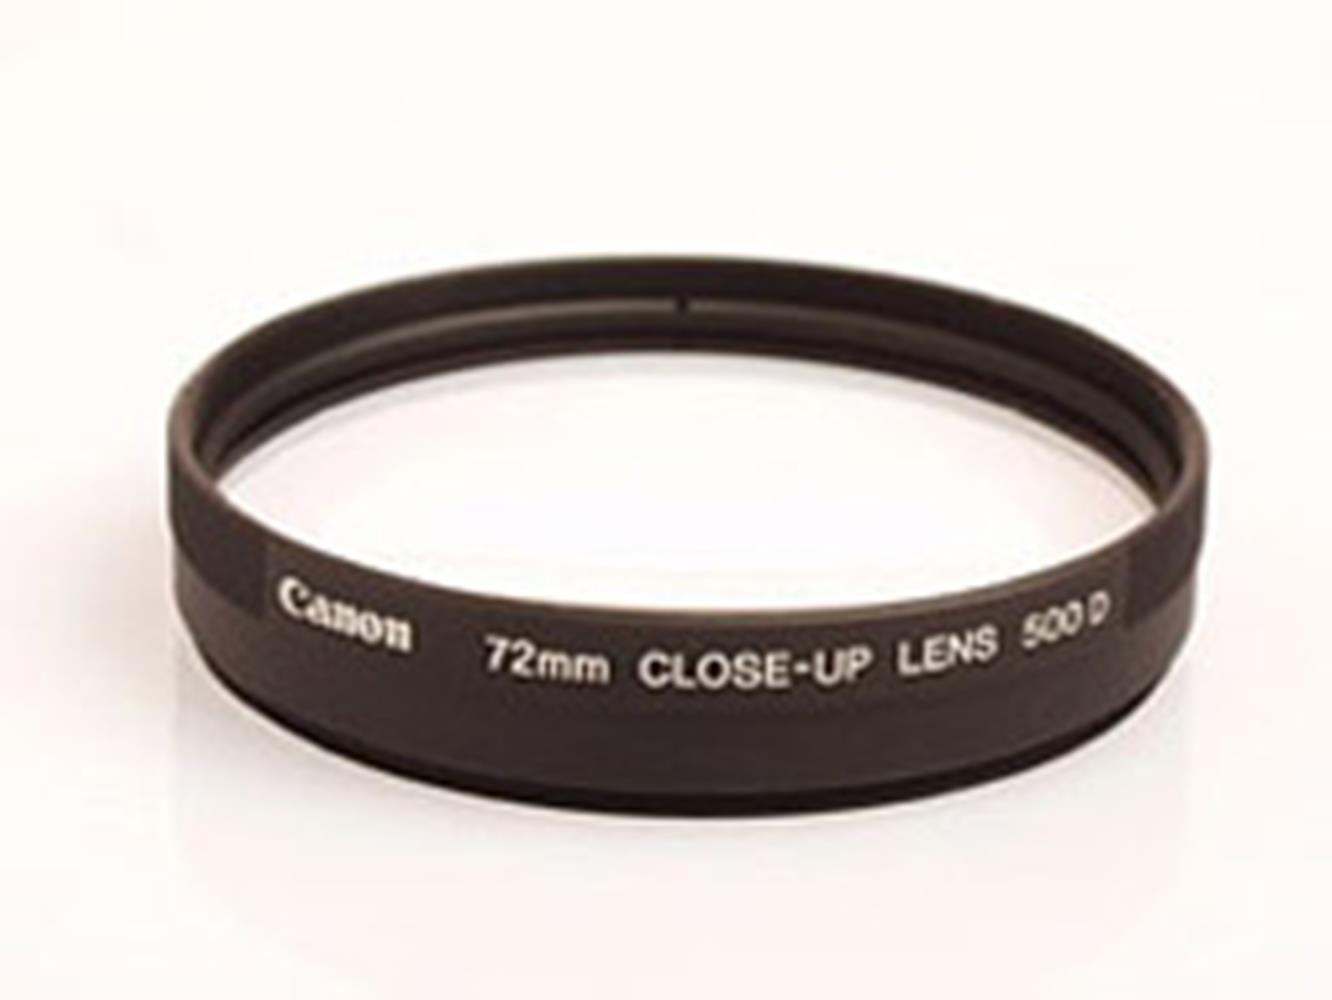 CANON 72MM CLOSE-UP LENS 500D